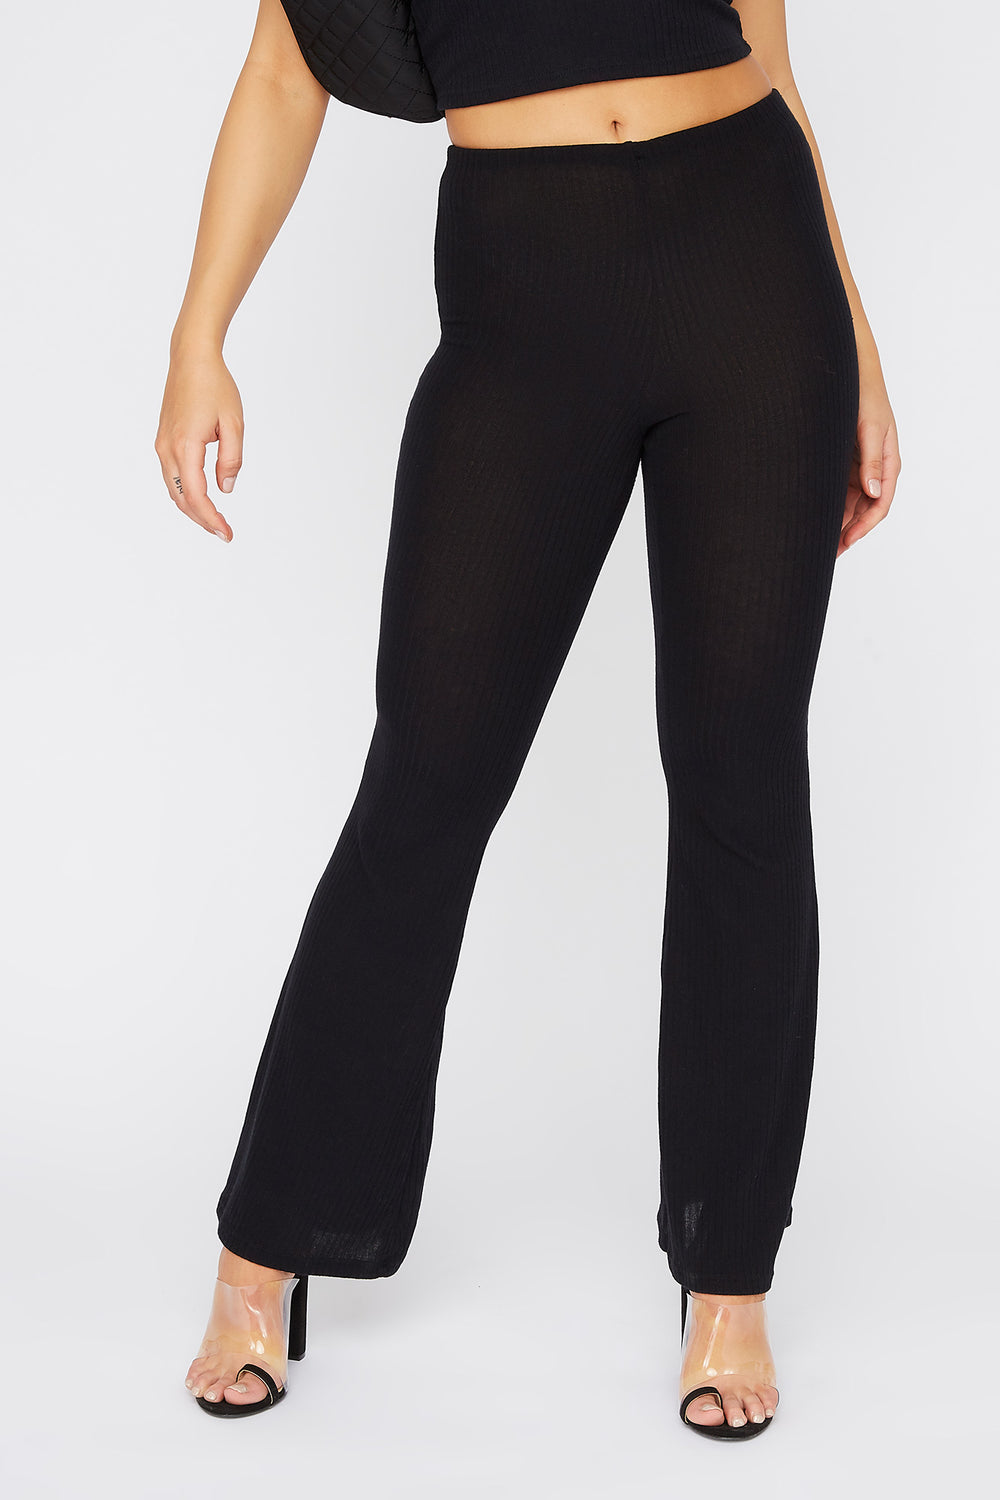 Ribbed Pull-On Flare Pant Black